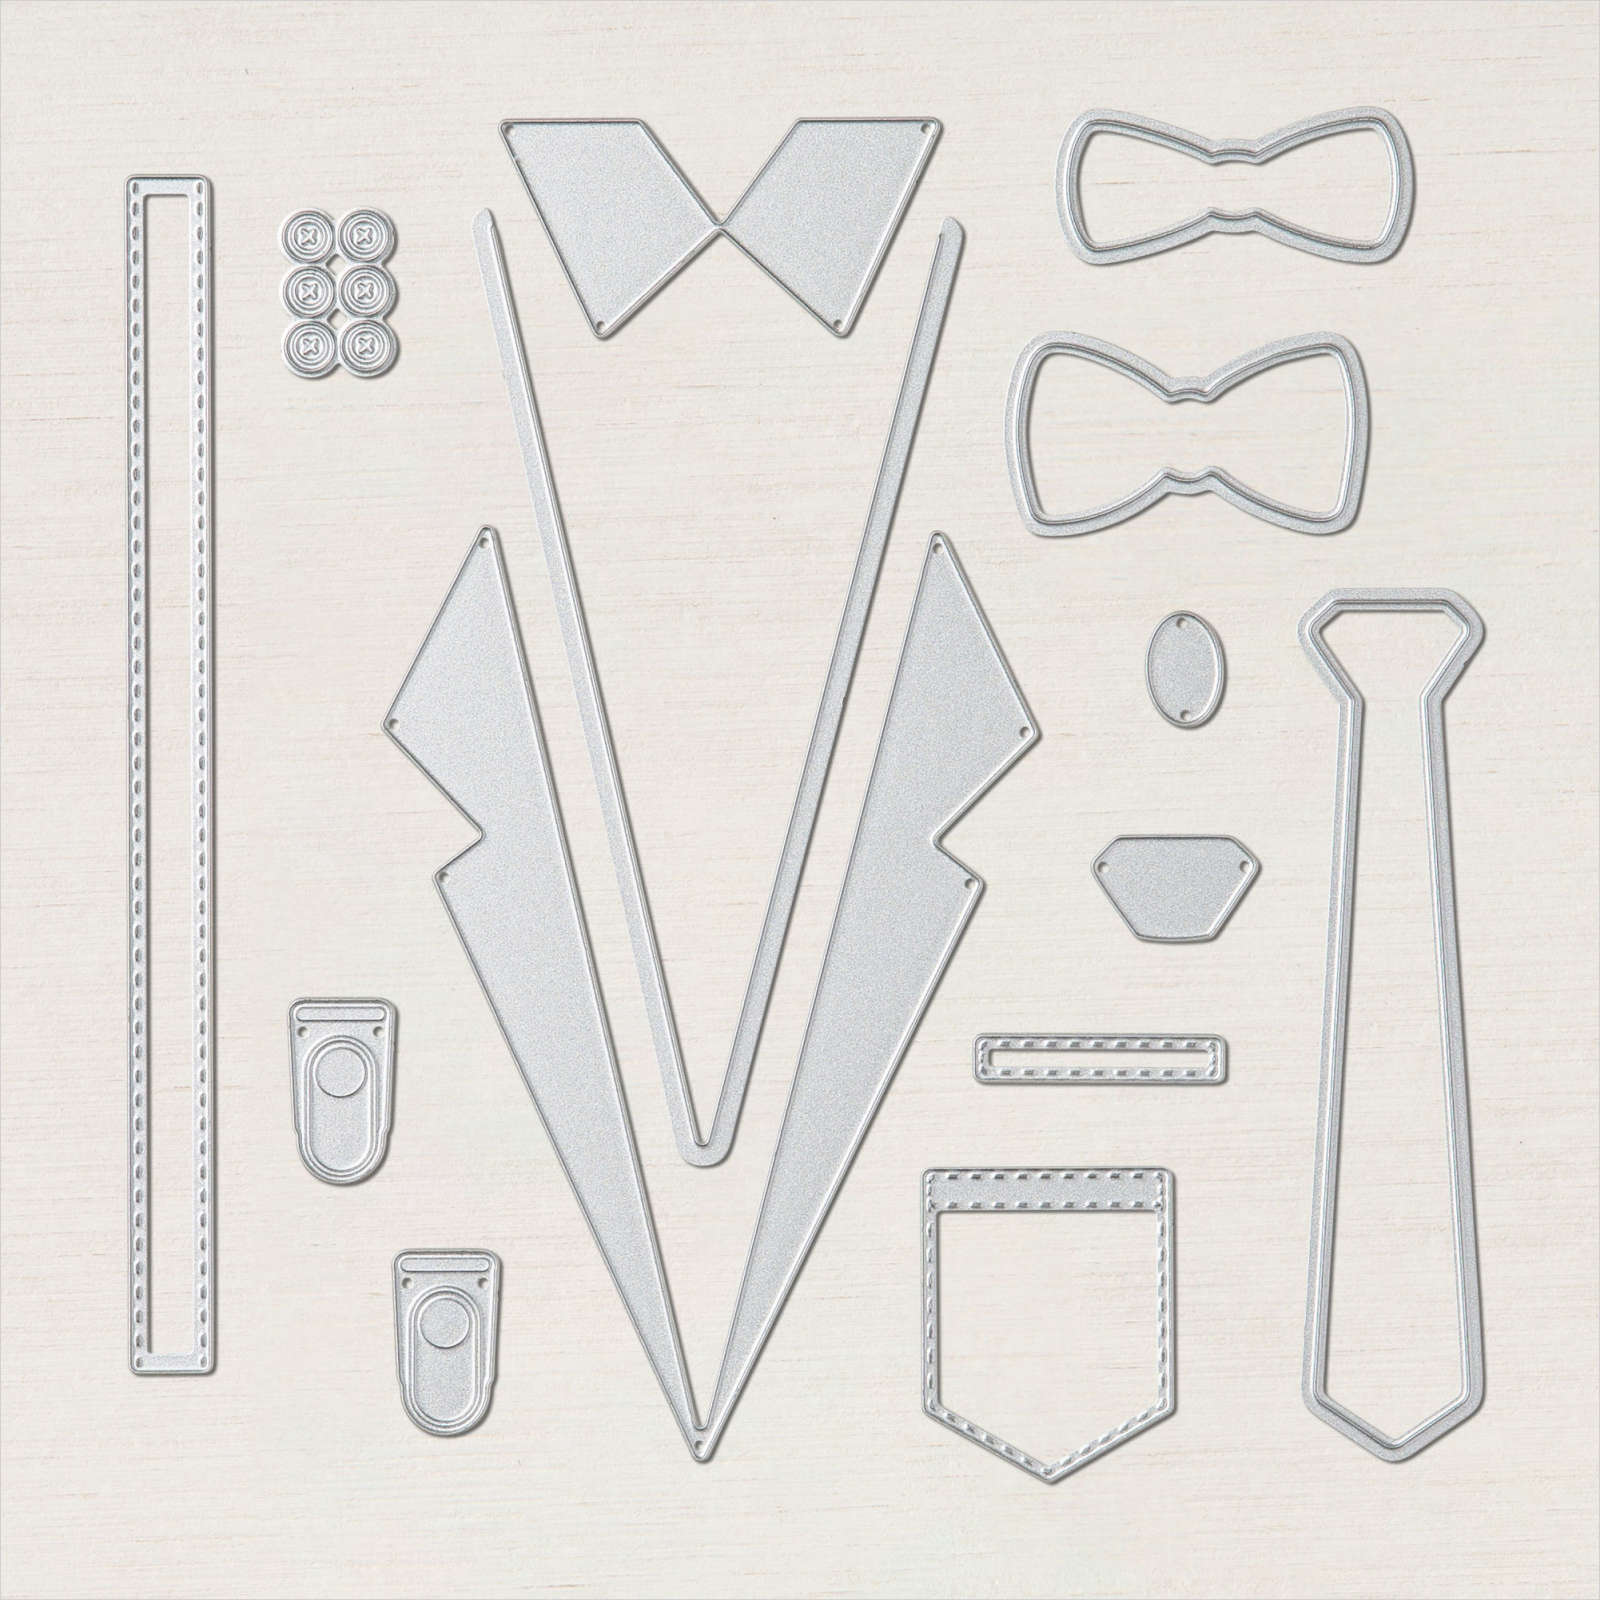 Suit & Tie Dies from Stampin' Up!